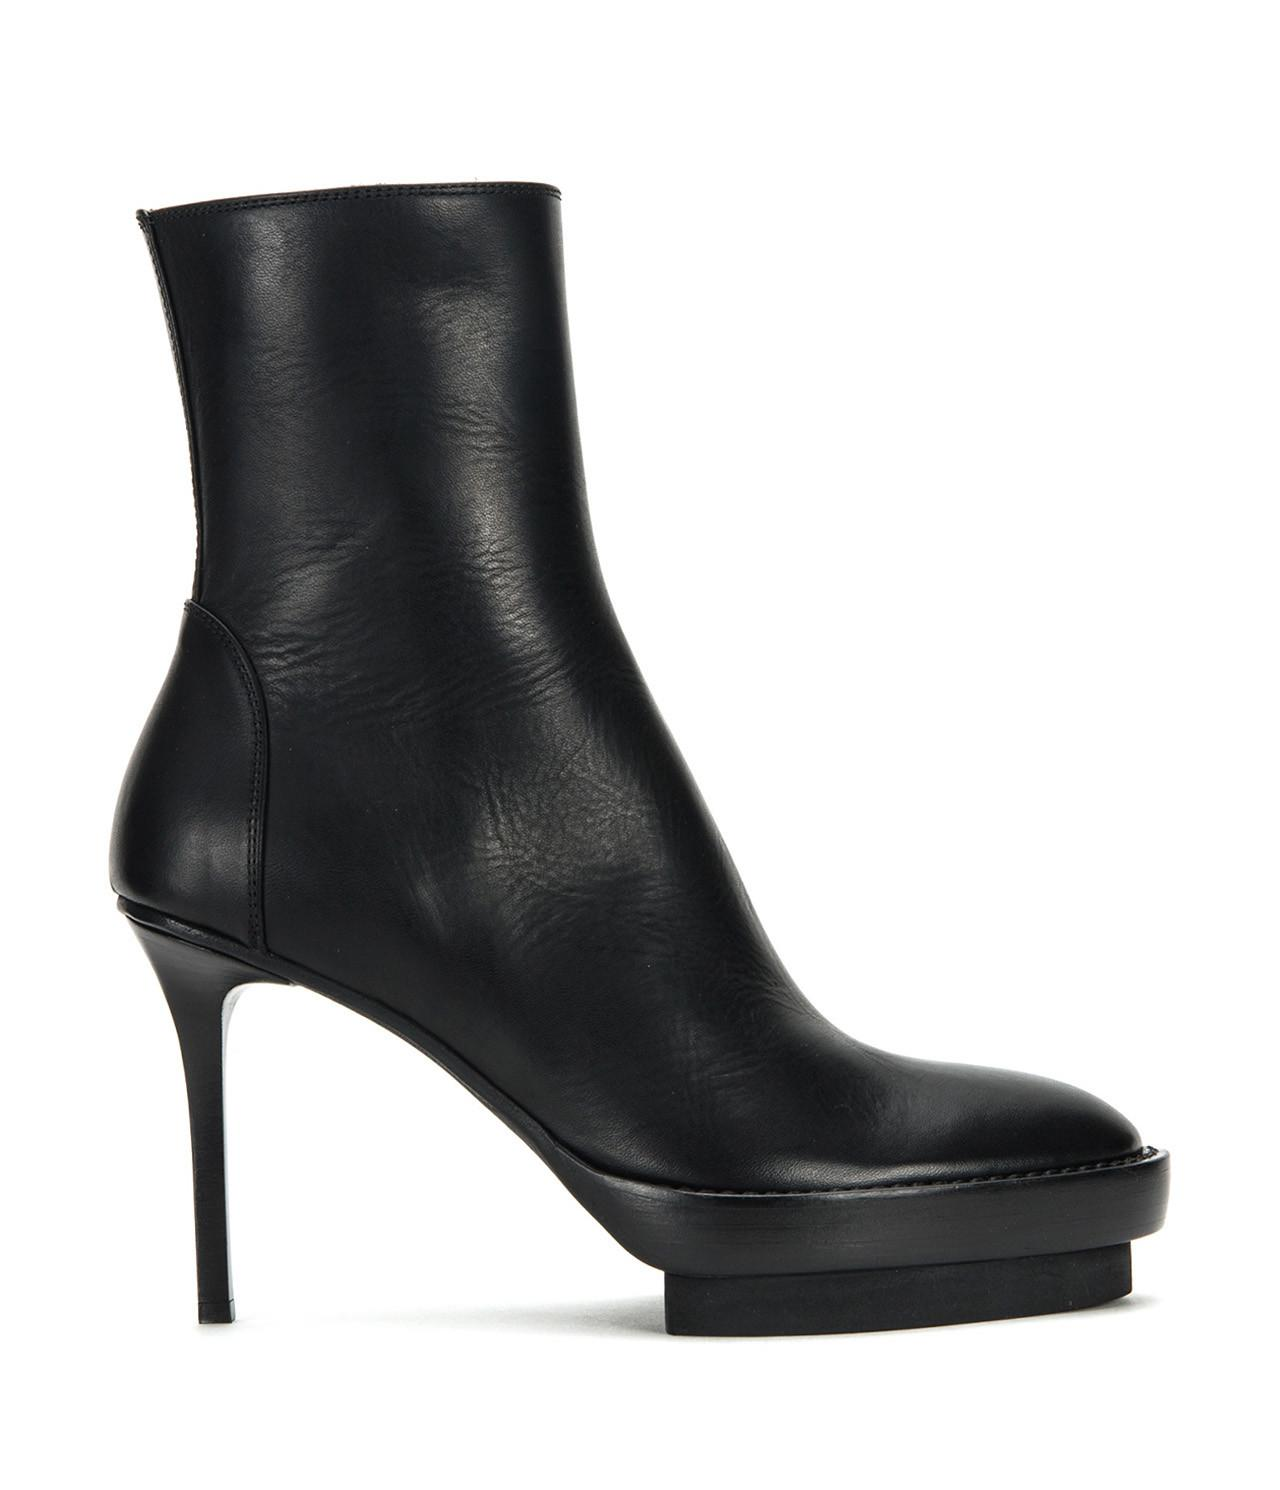 Ann Demeulemeester Suede Round-Toe Ankle Boots footlocker finishline cheap limited edition view online gk0Vaic